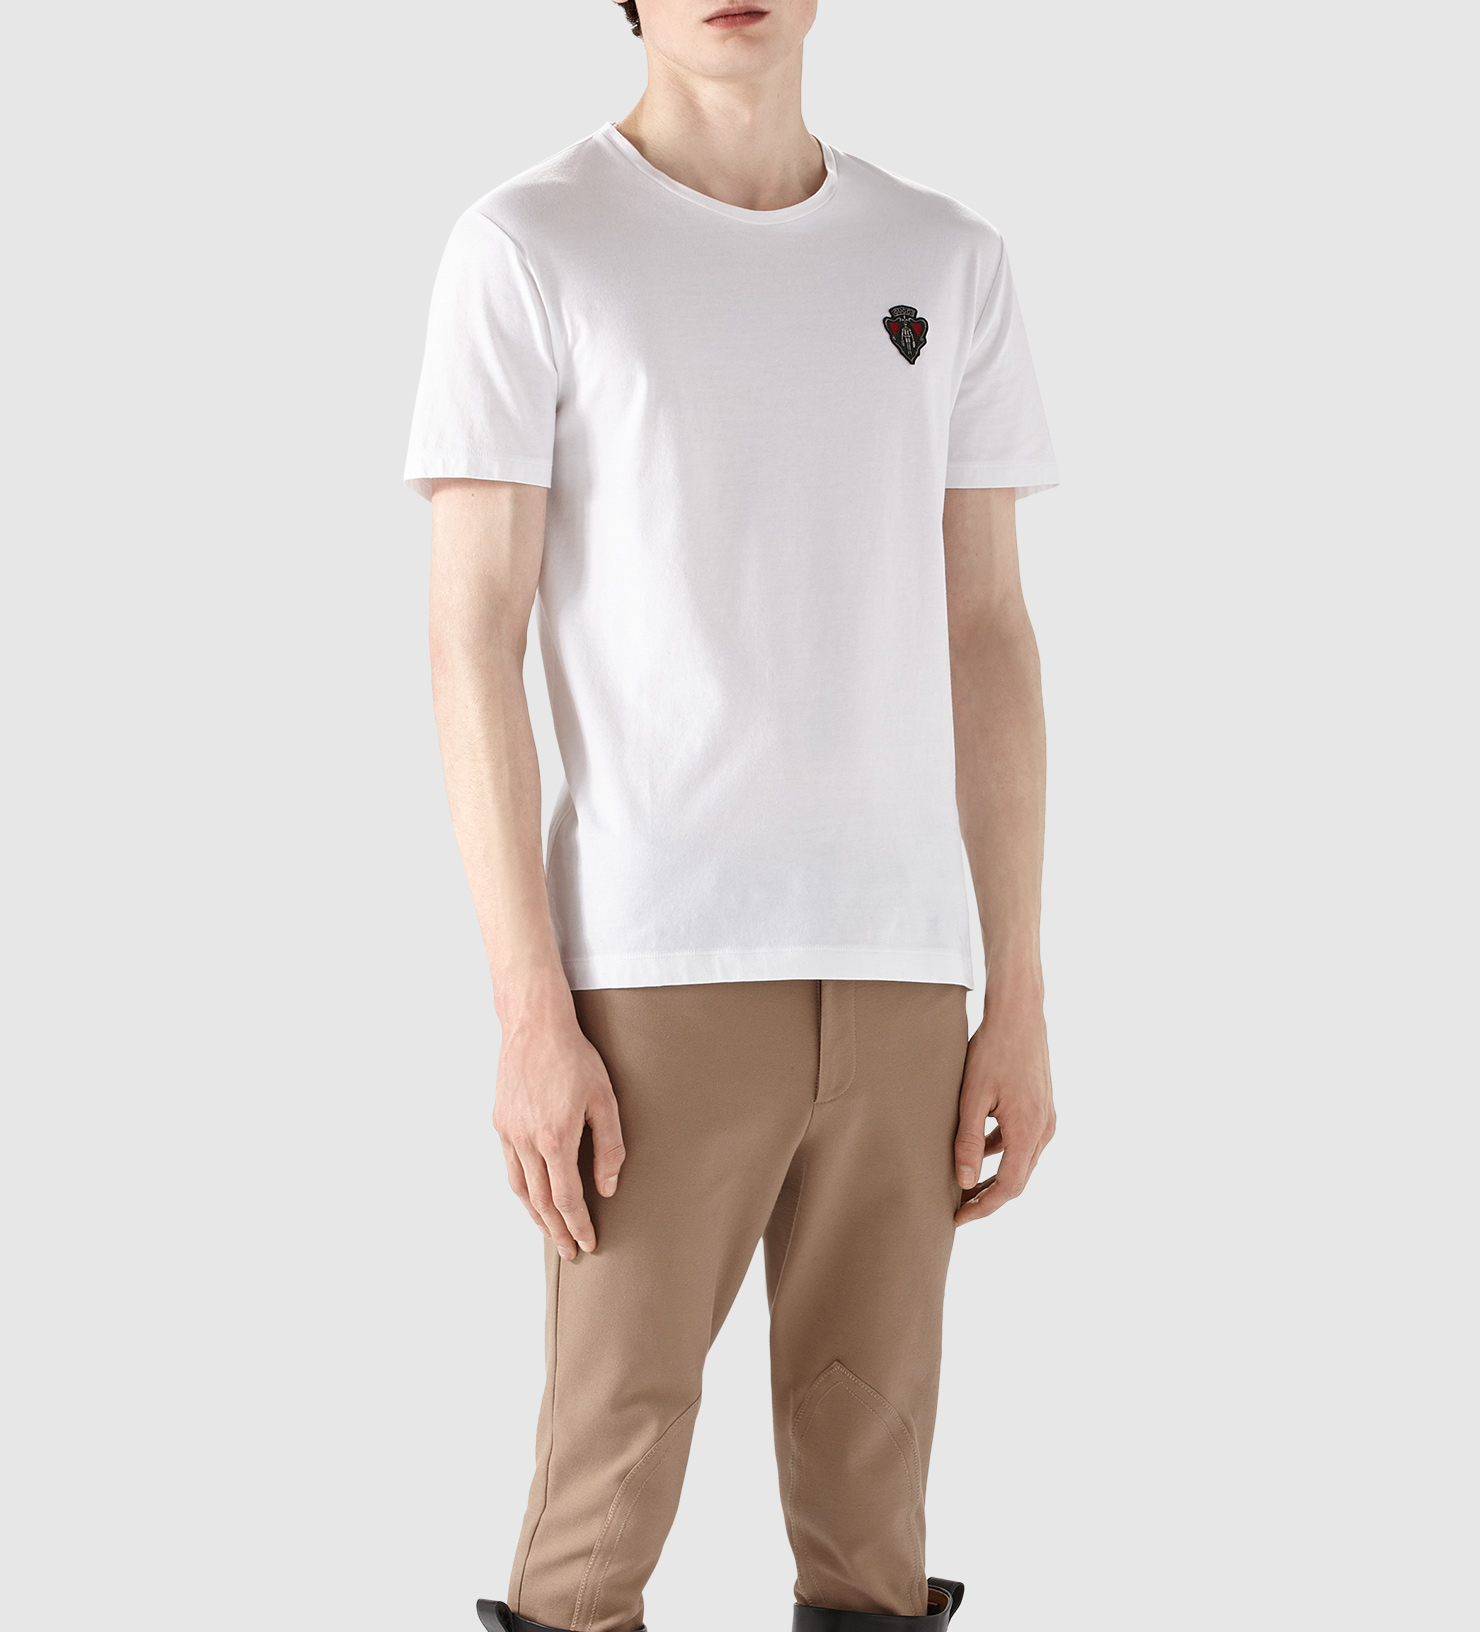 Gucci Cotton Jersey T-shirt in White for Men